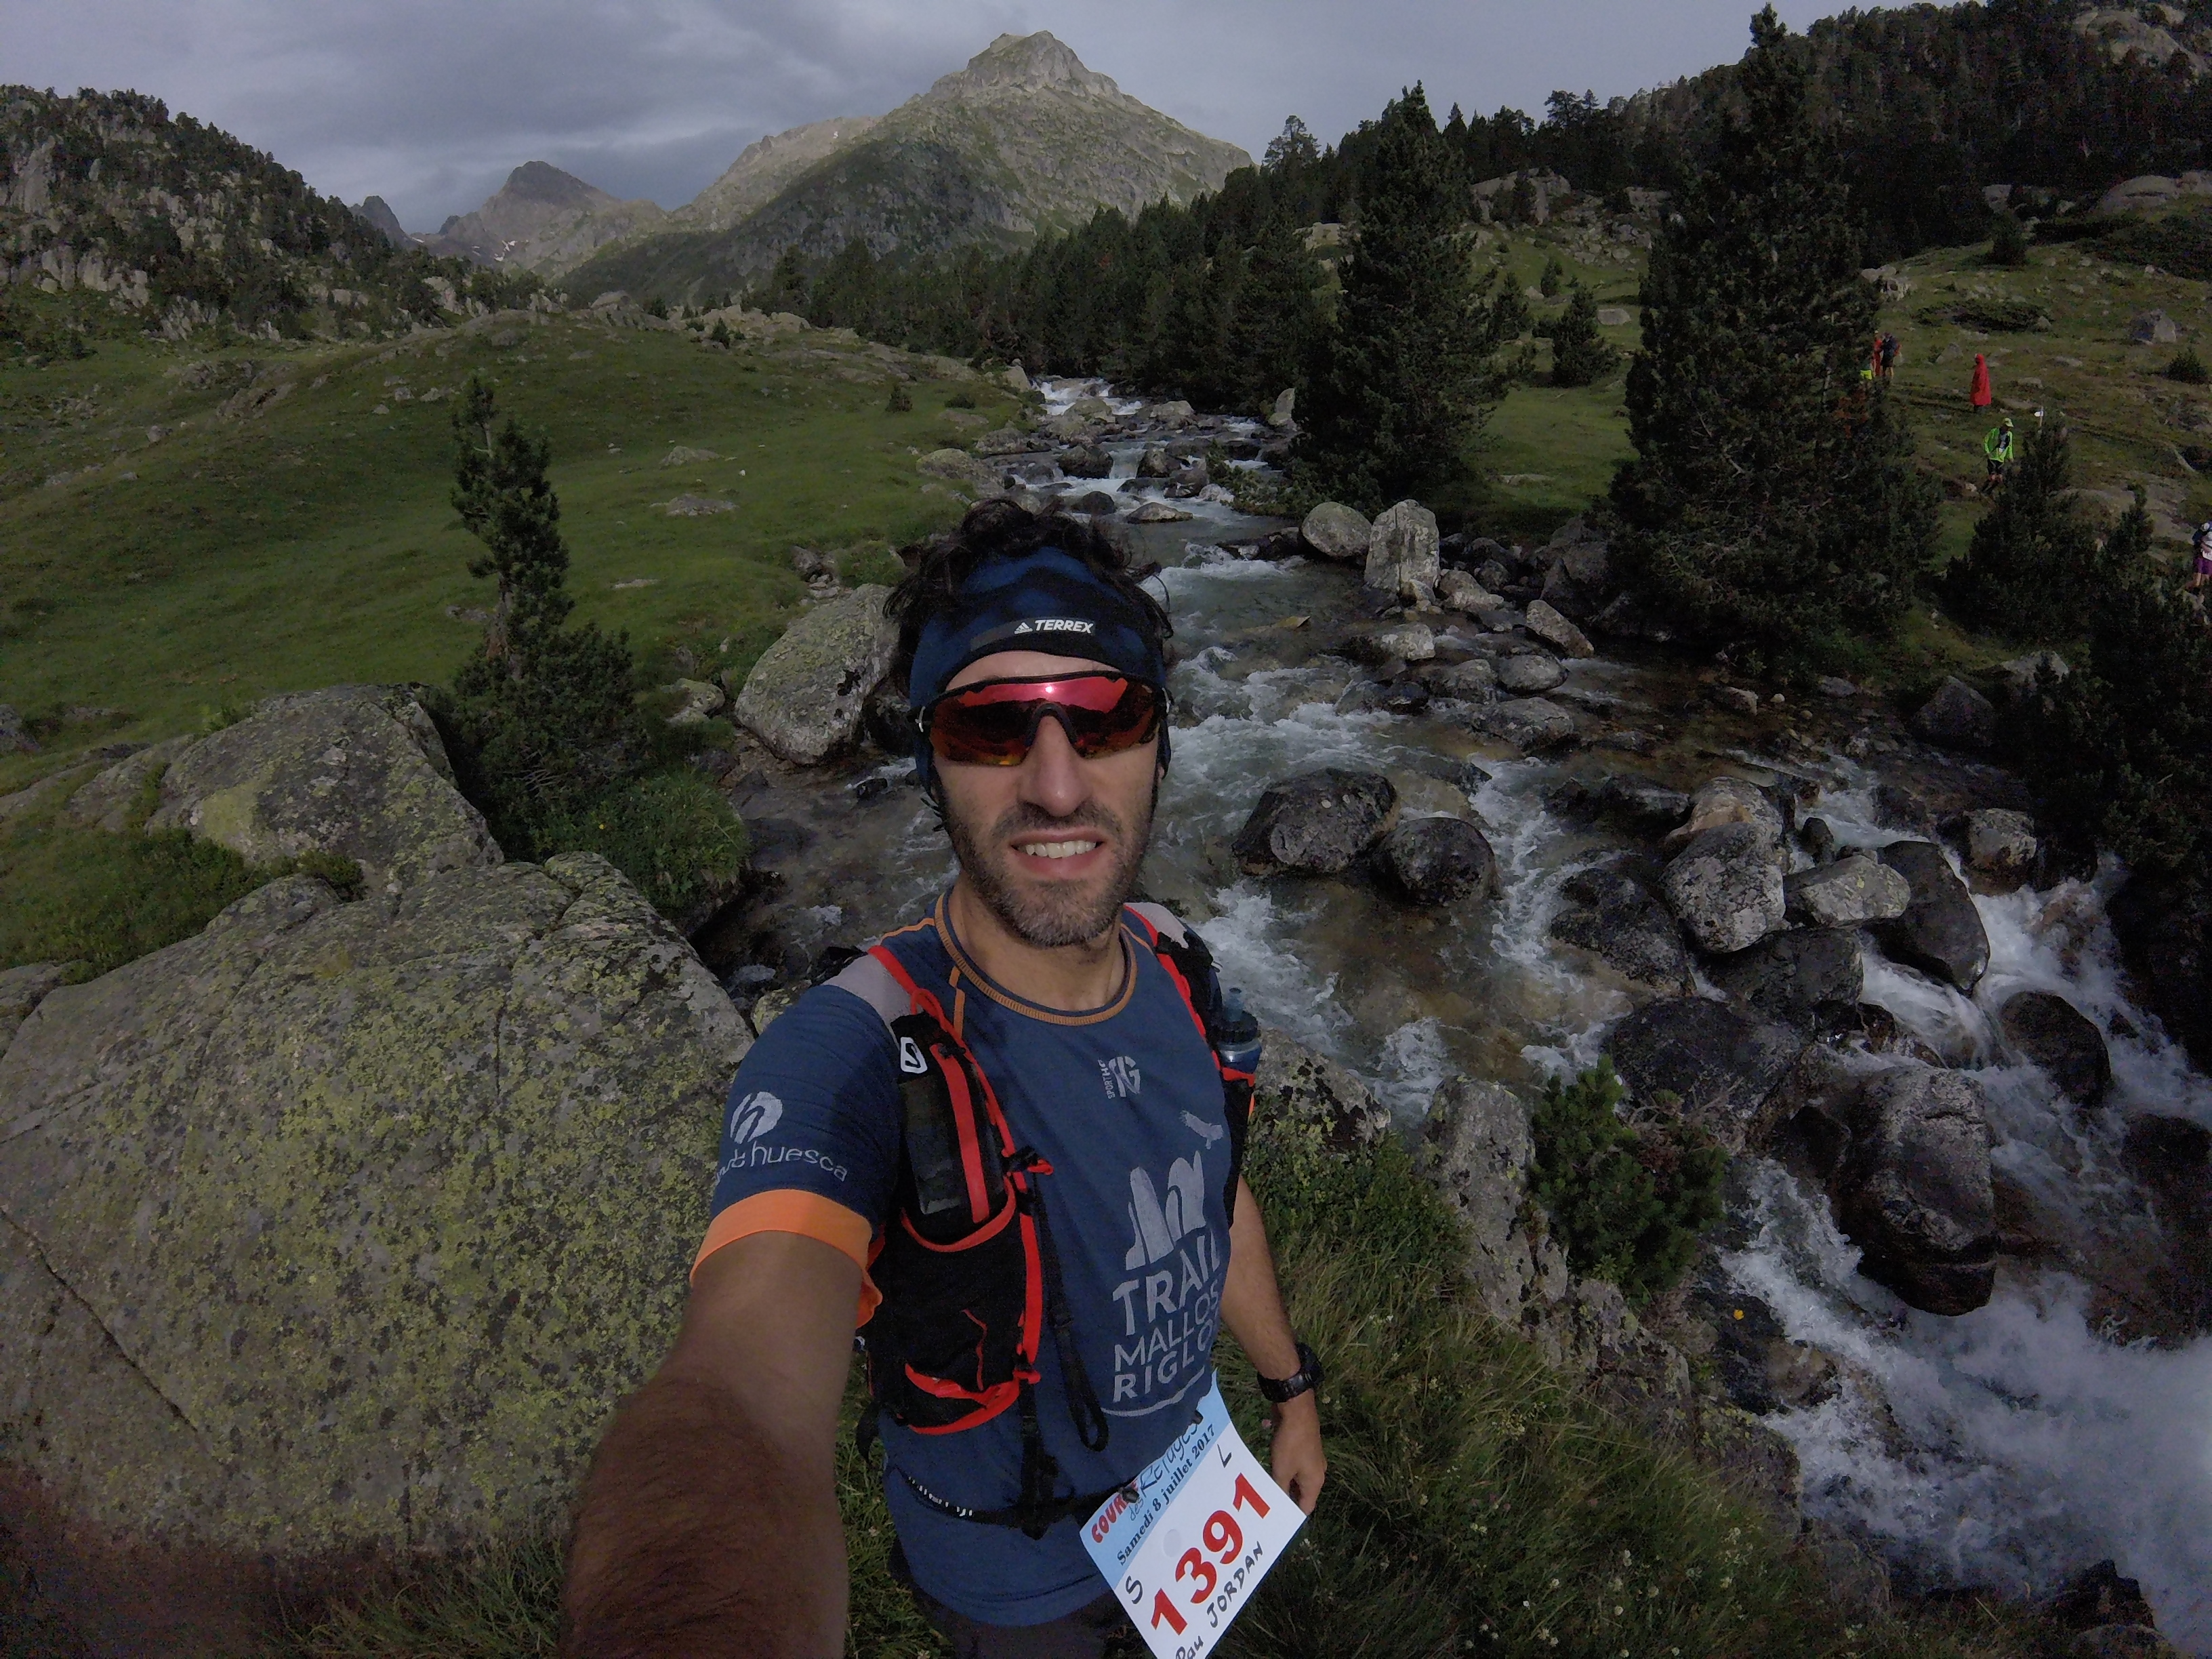 TRAIL COURSE DES REFUGES, Cauterets, Francia. (53km. y 3457 m. desnivel +)